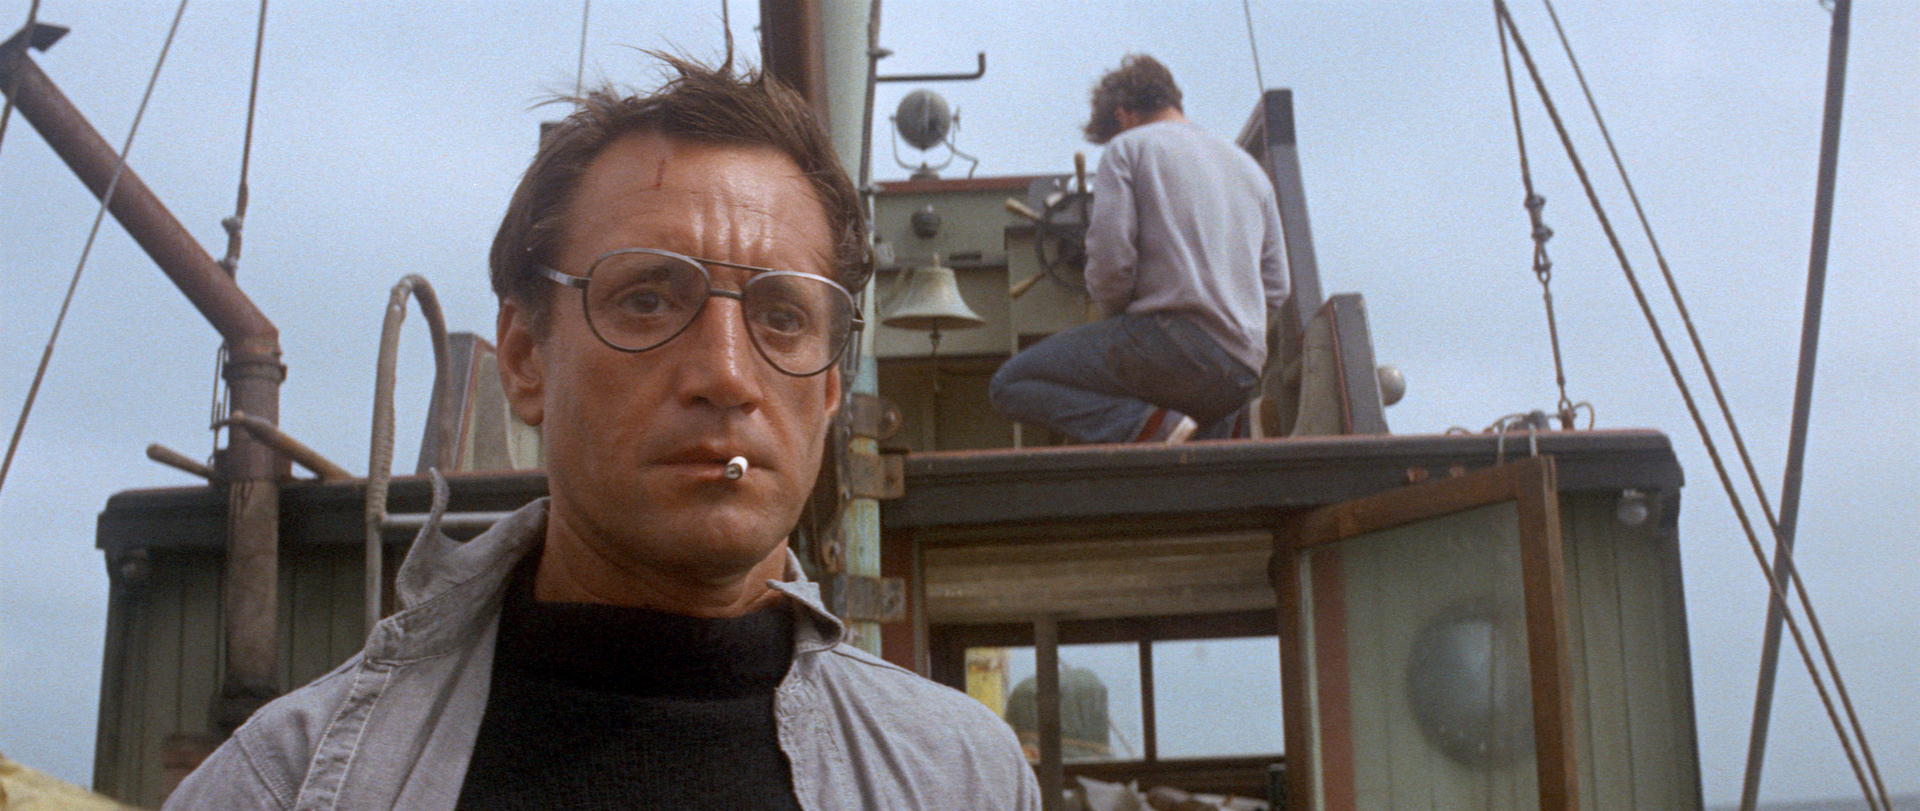 Brody looks out to the ocean and smokes a cigarette on board the Orca, while Quint steers the boat in the background